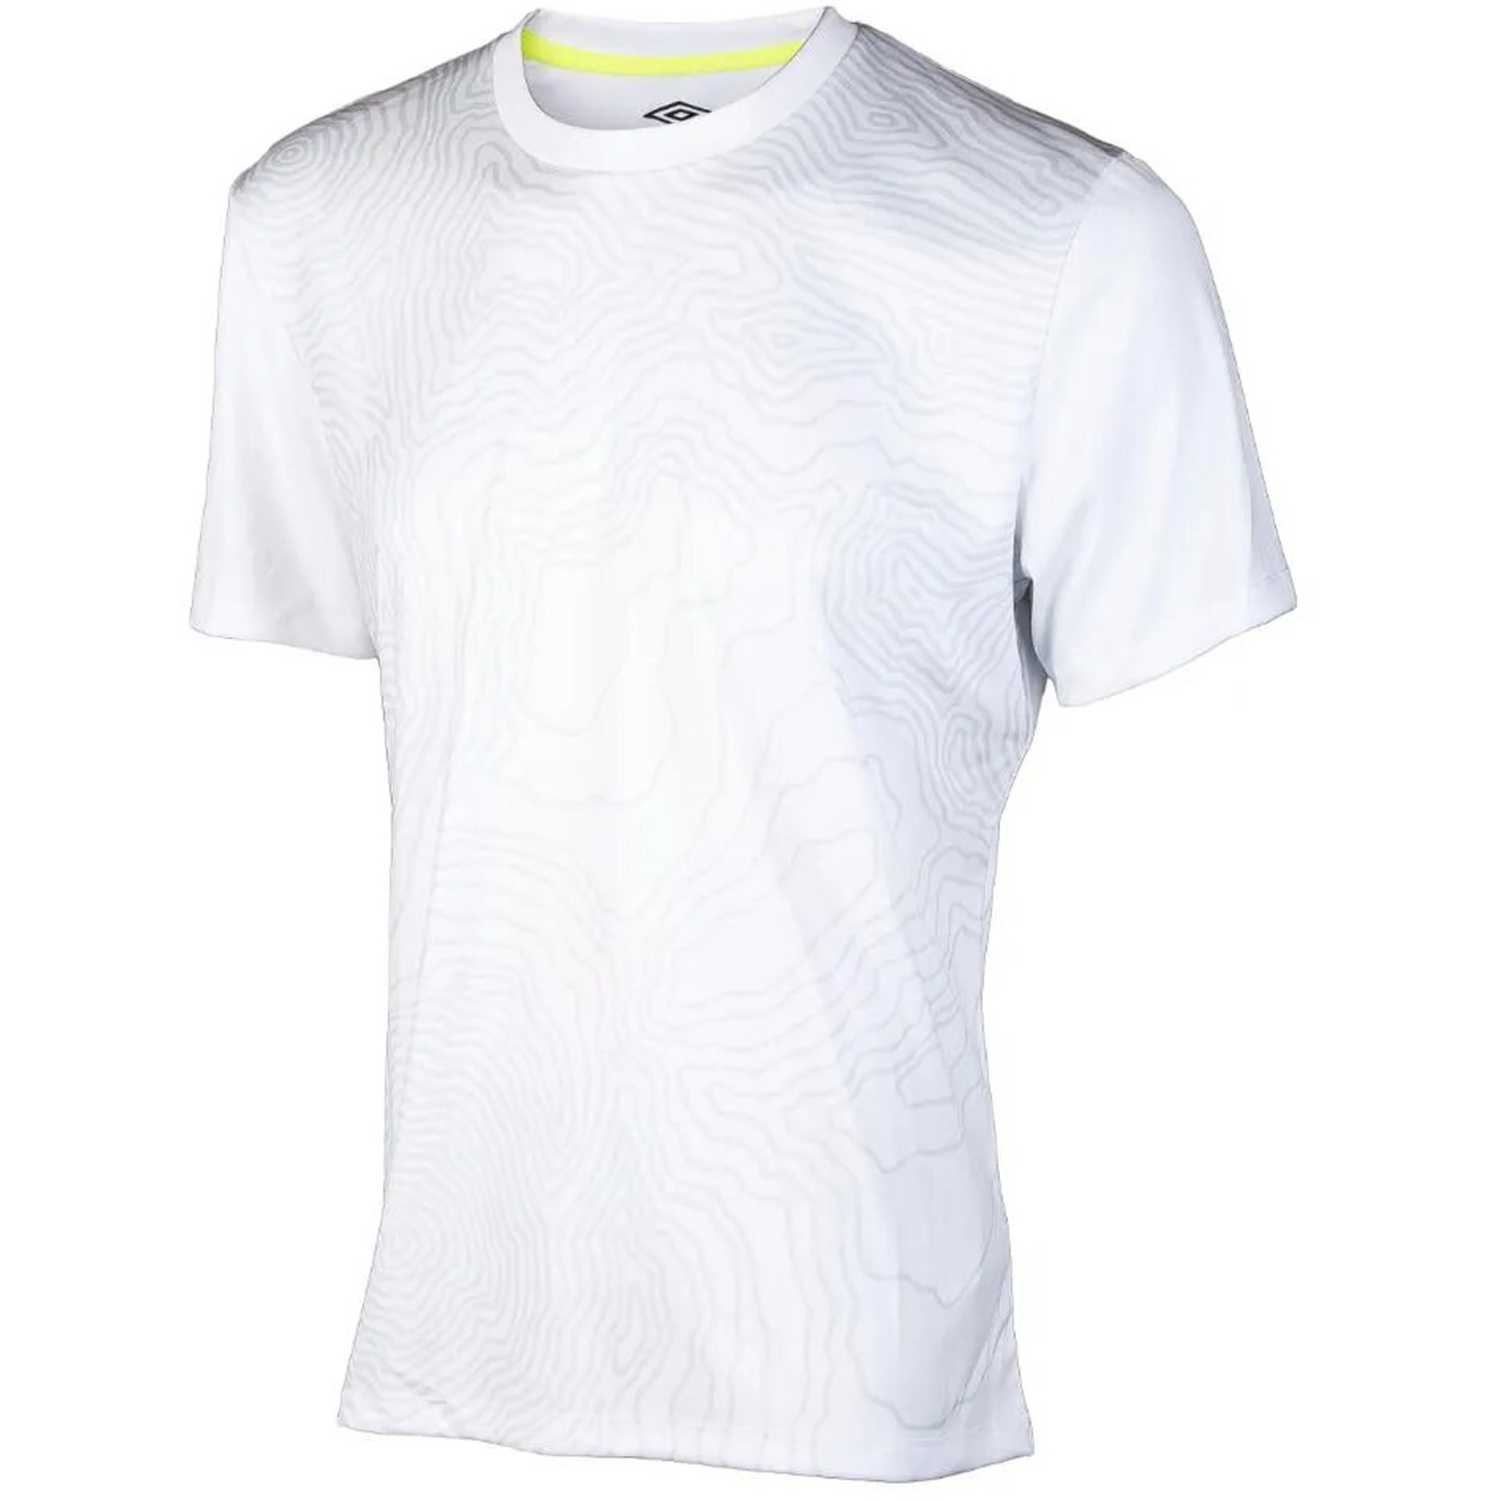 Polo de Hombre Umbro Gris silo training contour graphic tee